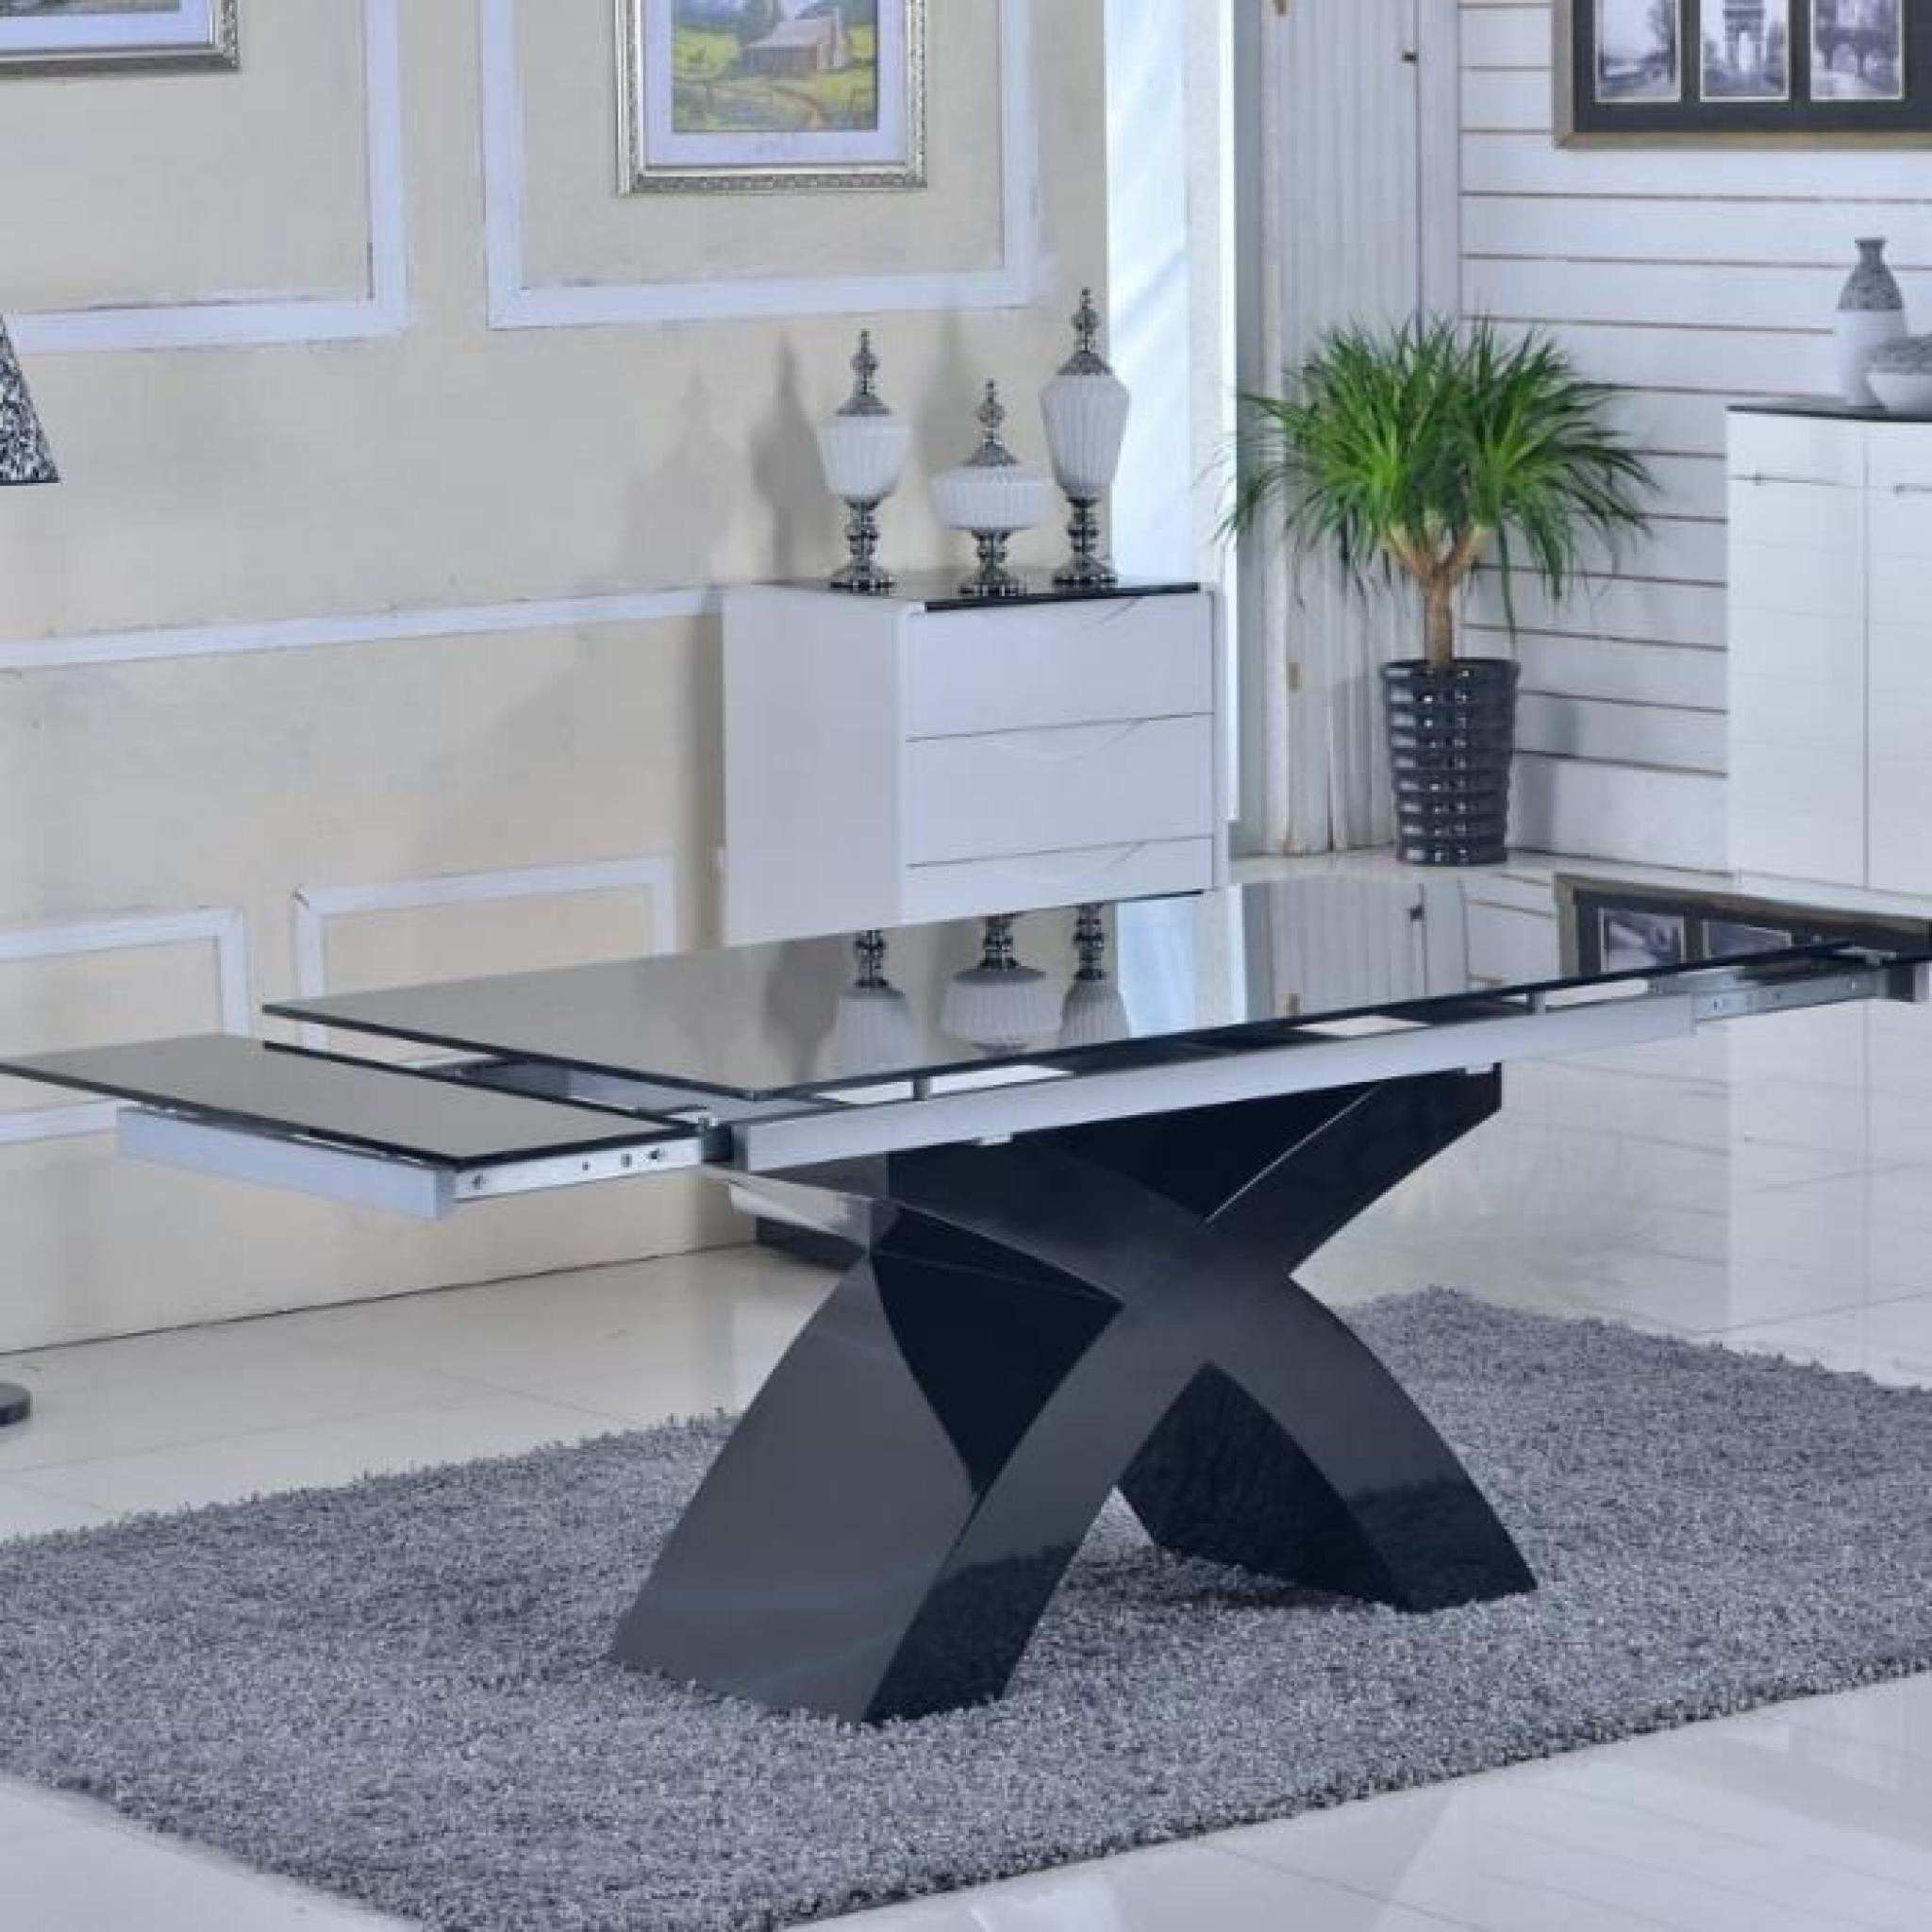 Table console extensible pas cher valdiz for Table extensible noir et blanc